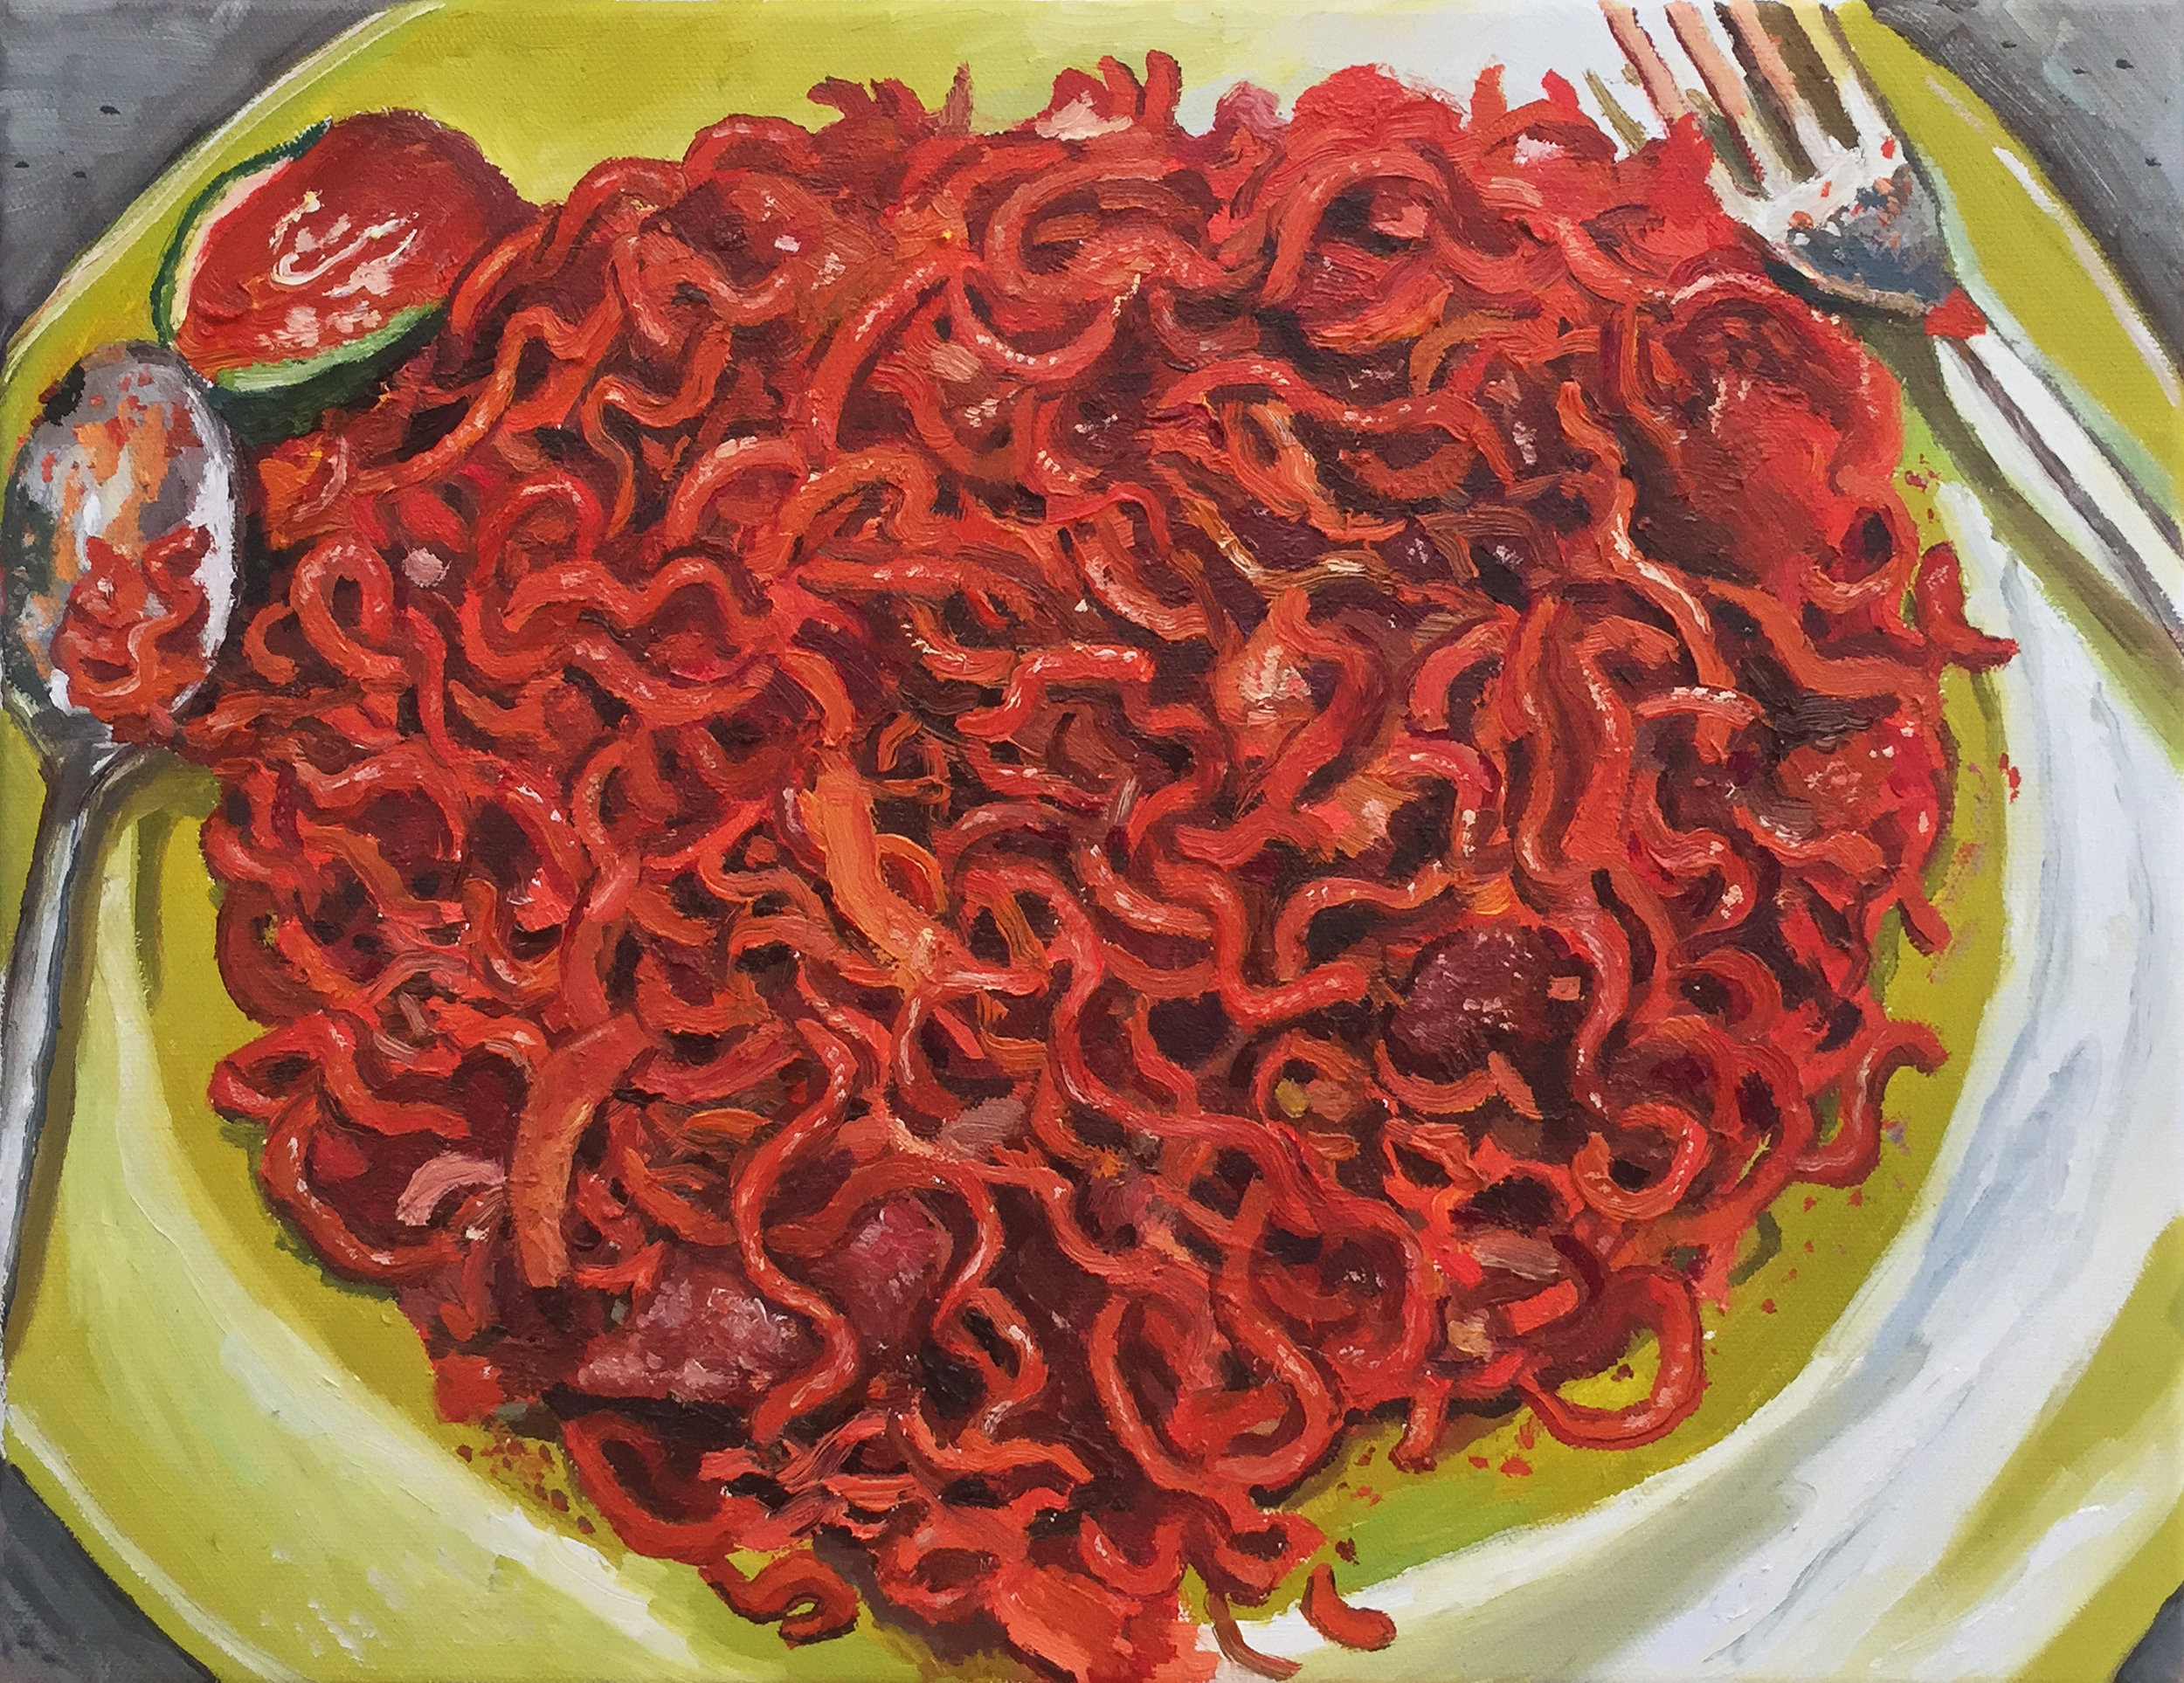 Yeo Tze Yang, 'Maggi Goreng', 2018, oil on canvas, 30.5 x 41cm. Image courtesy of the artist and iPreciation.